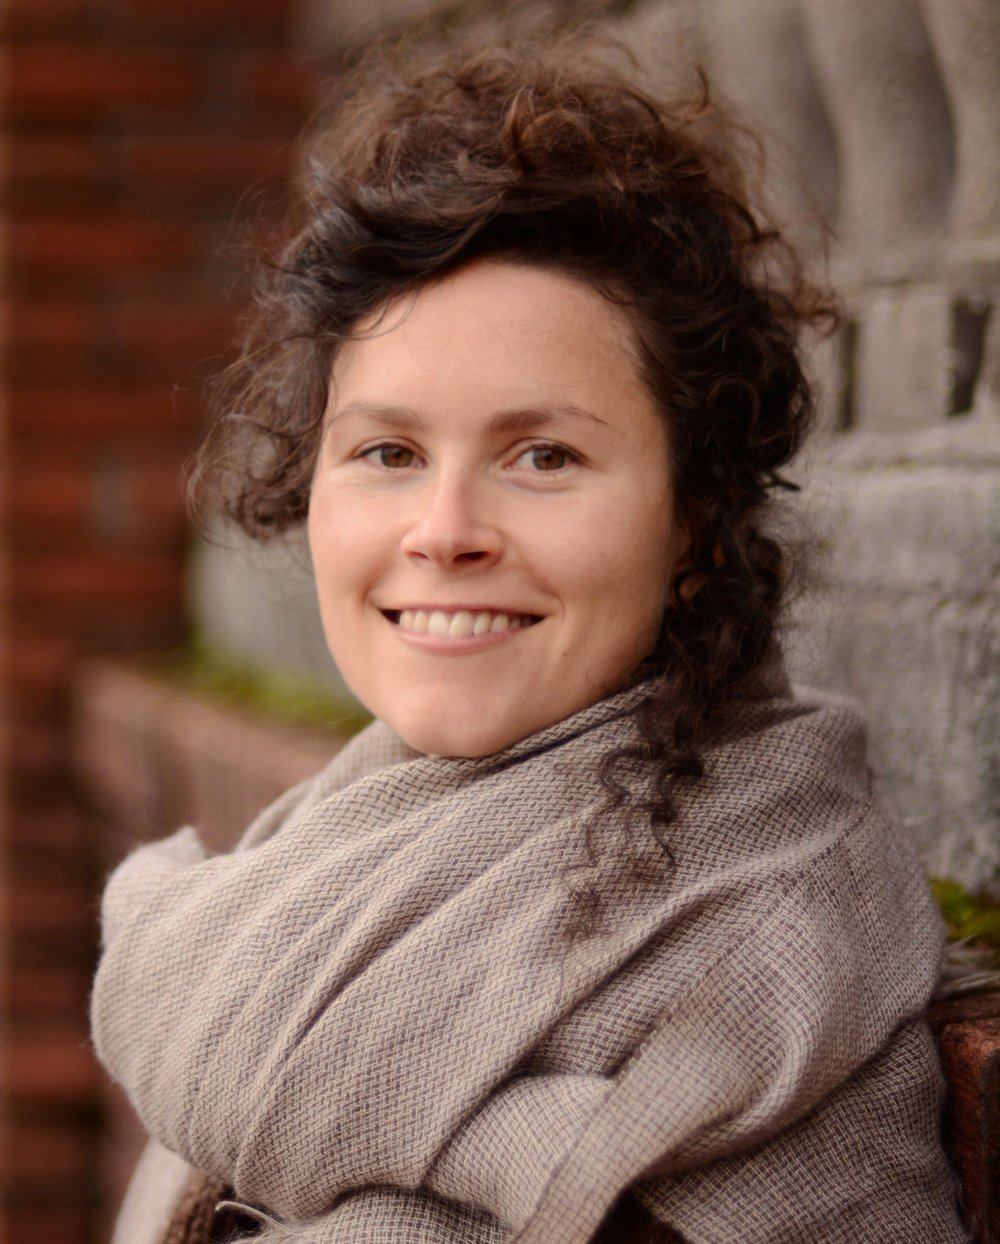 Smiling woman with dark curly hair and oversized grey scarf